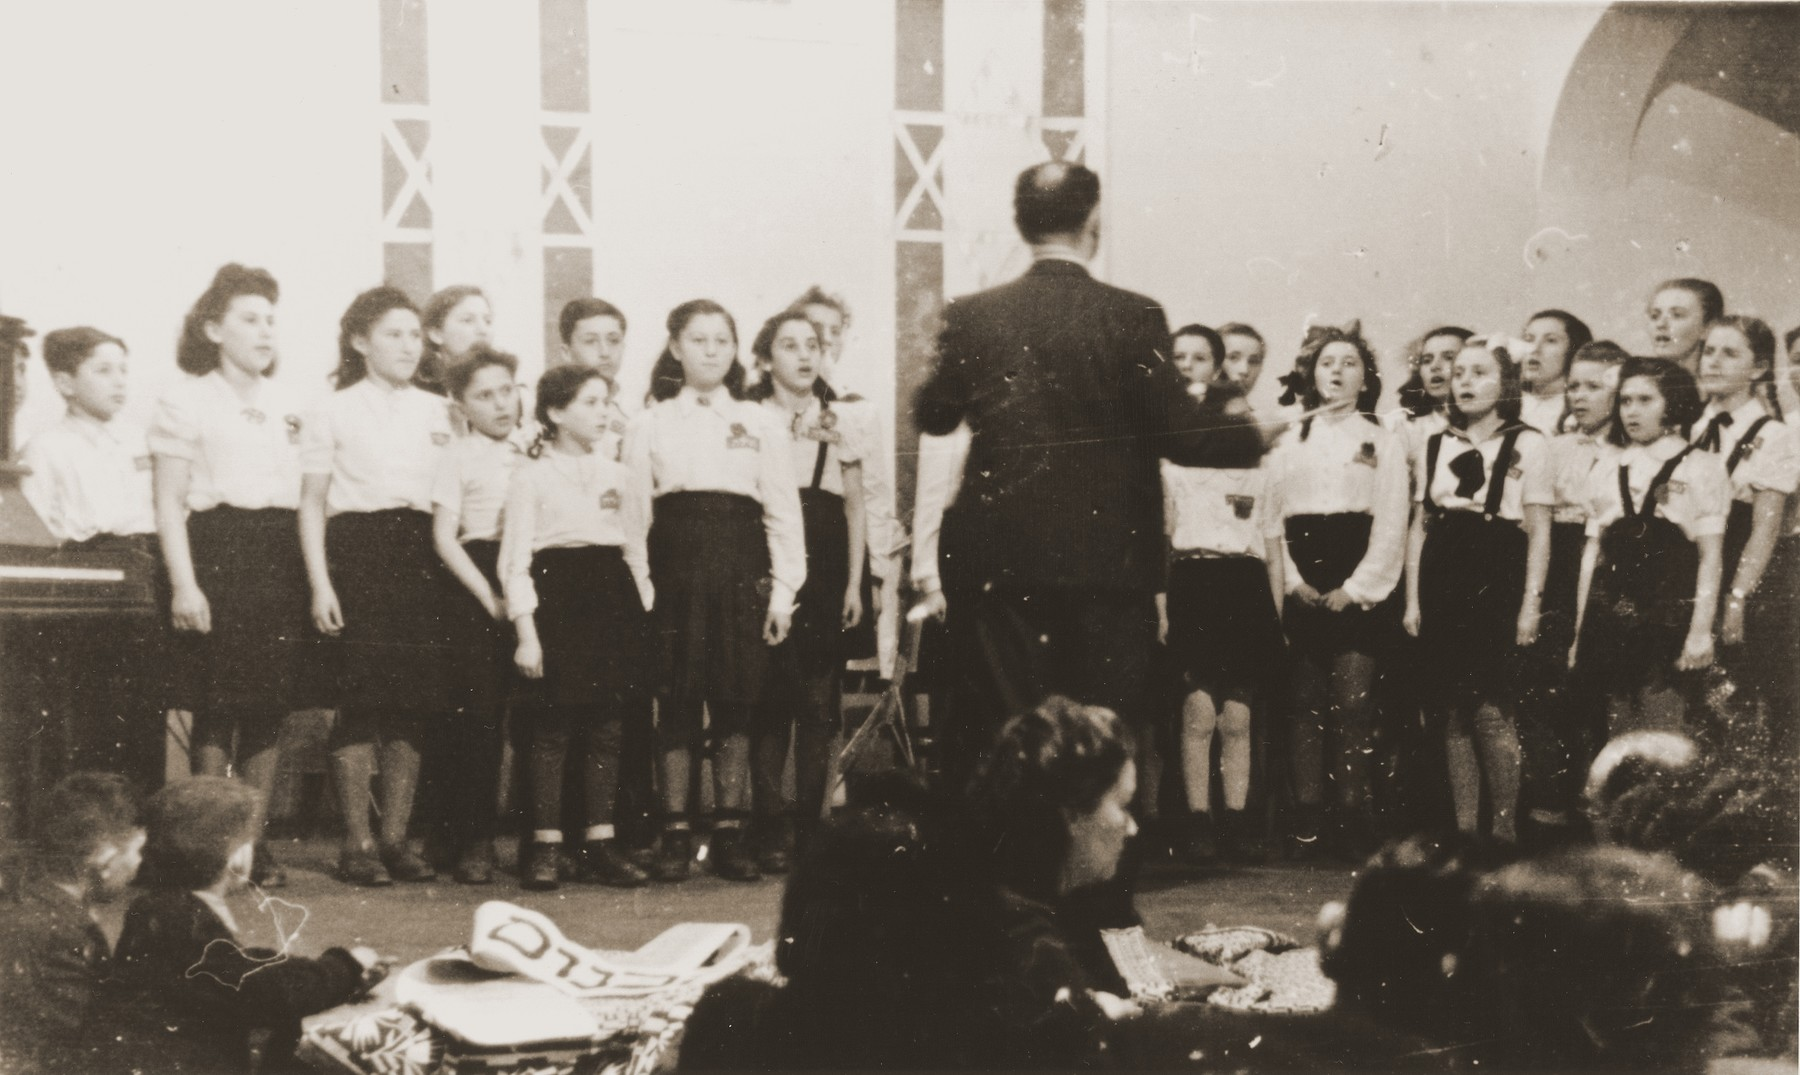 Members of a children's choir performs in the Neu Freimann displaced persons camp.